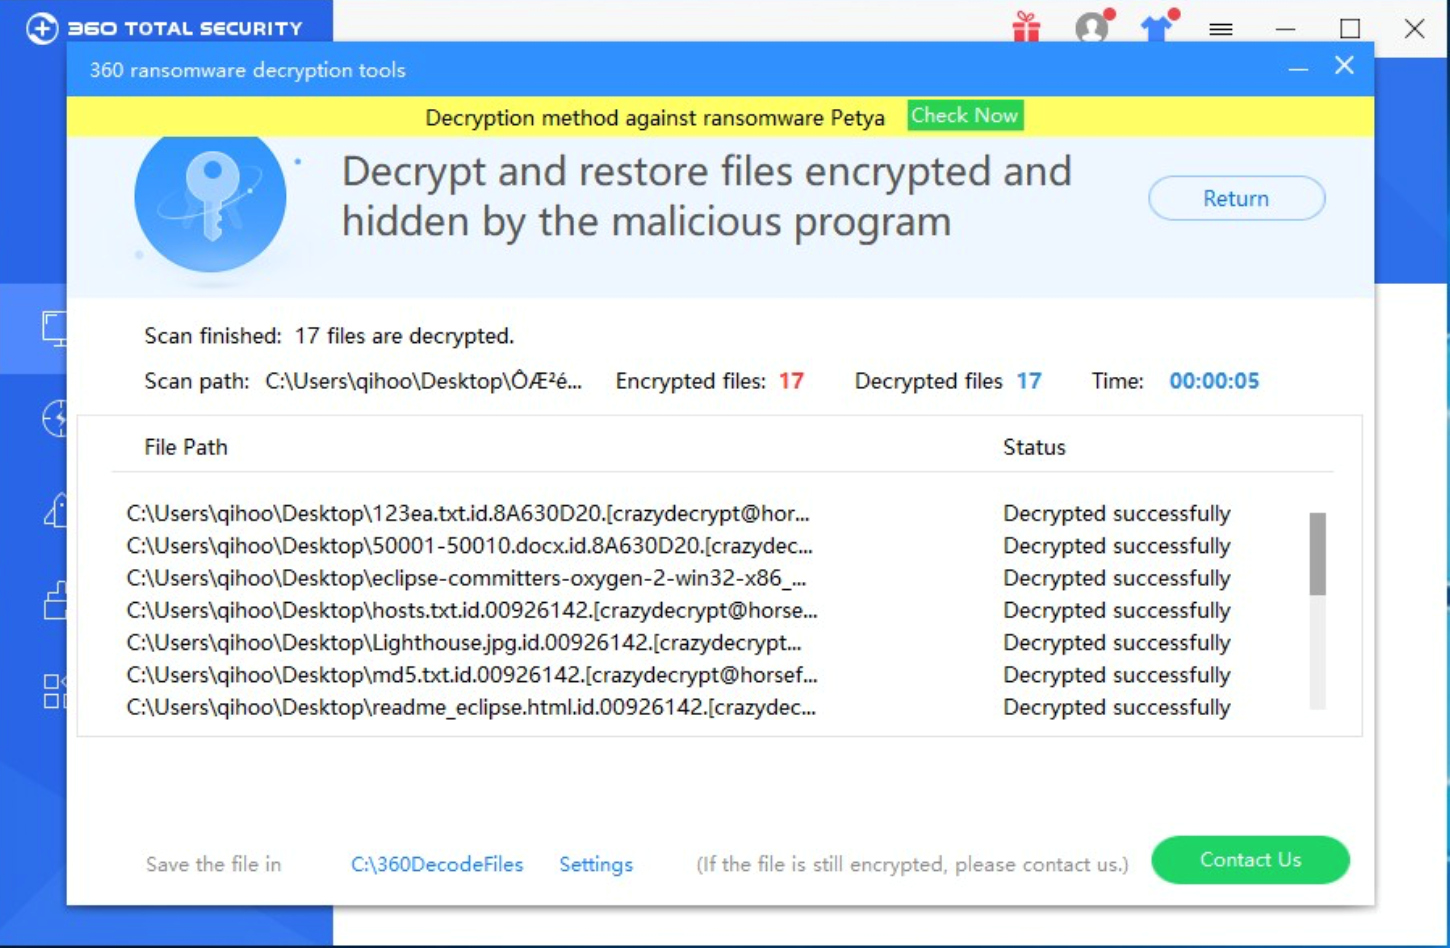 360 Total Security First support decrypting CrazyCrypt 2.1 Ransomware